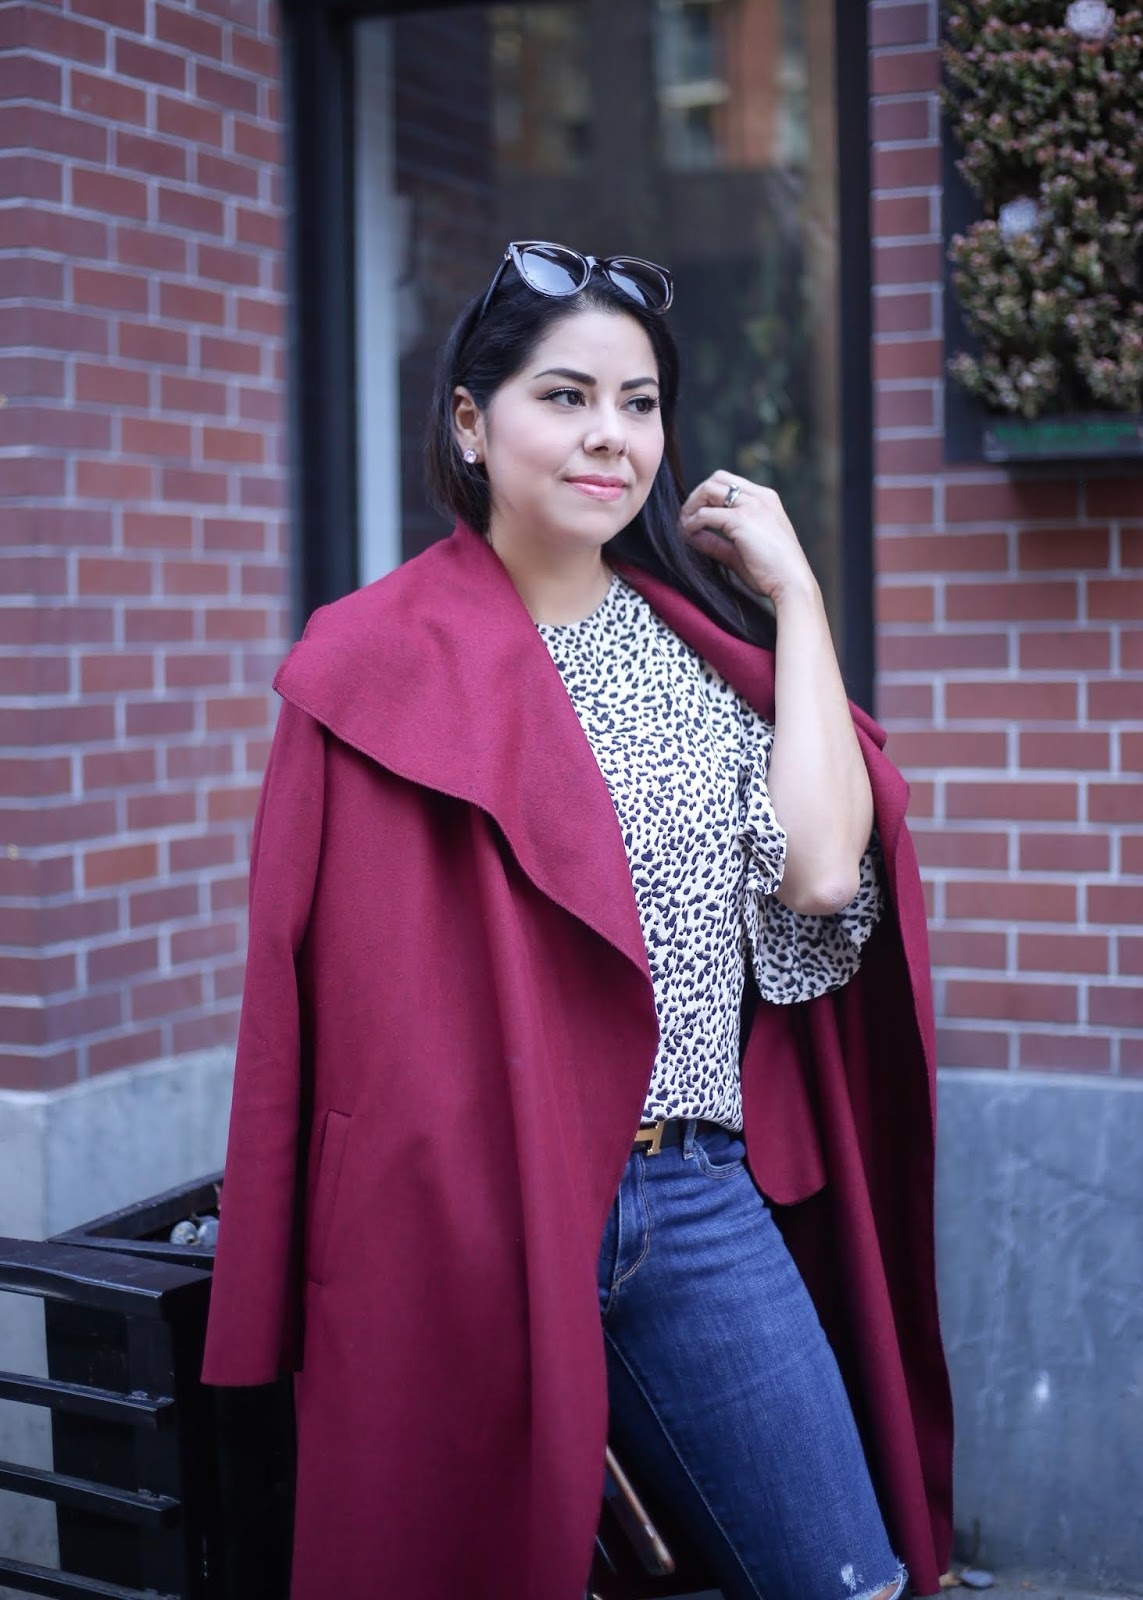 how to wear a burgundy coat, pairing burgundy with leopard outfit